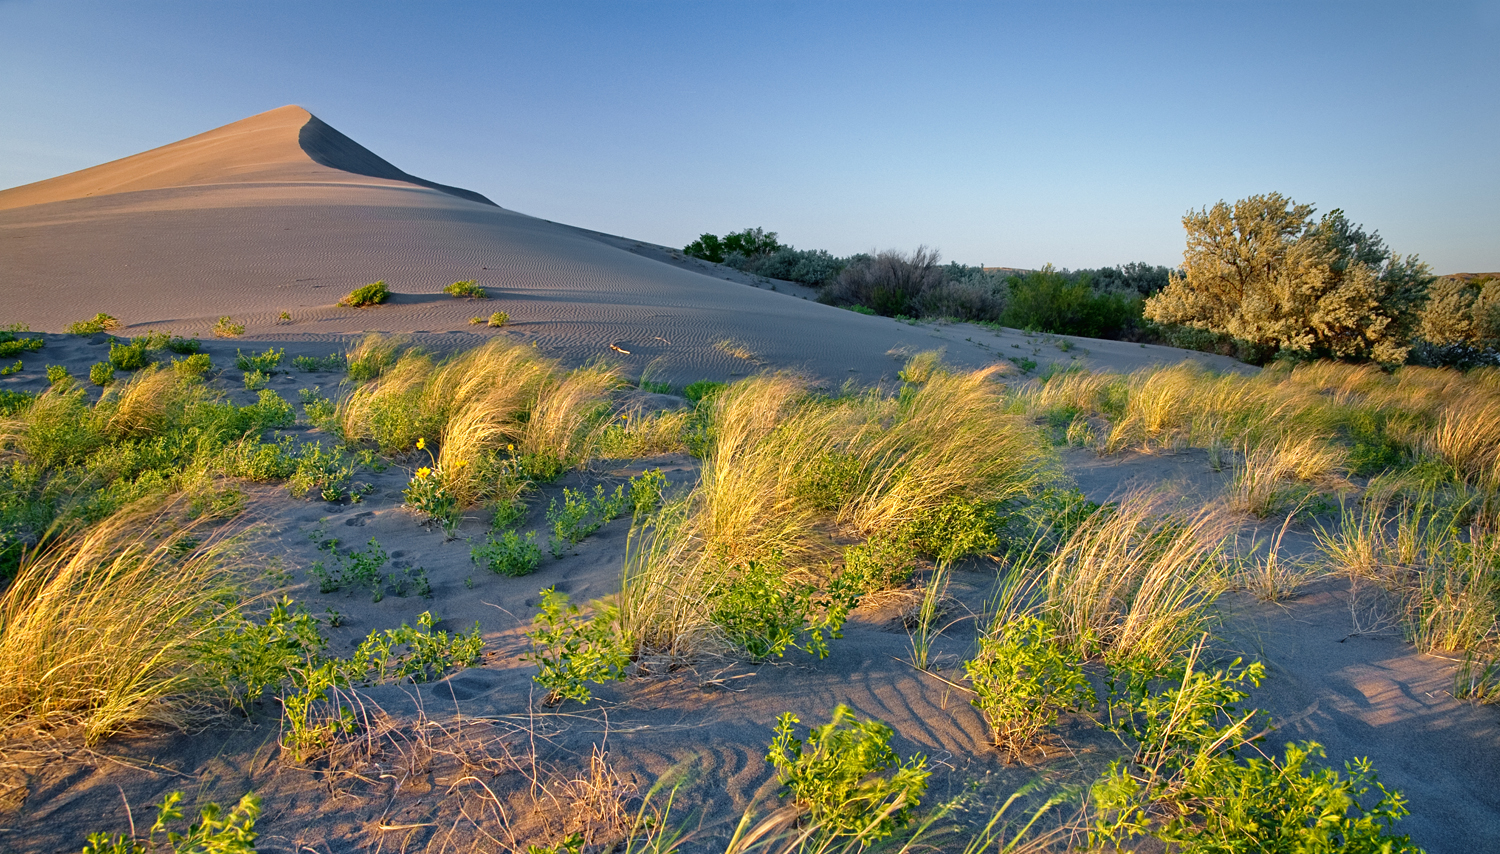 Bruneau Sand Dunes photo by Charles Knowles via Flickr Creative Commons